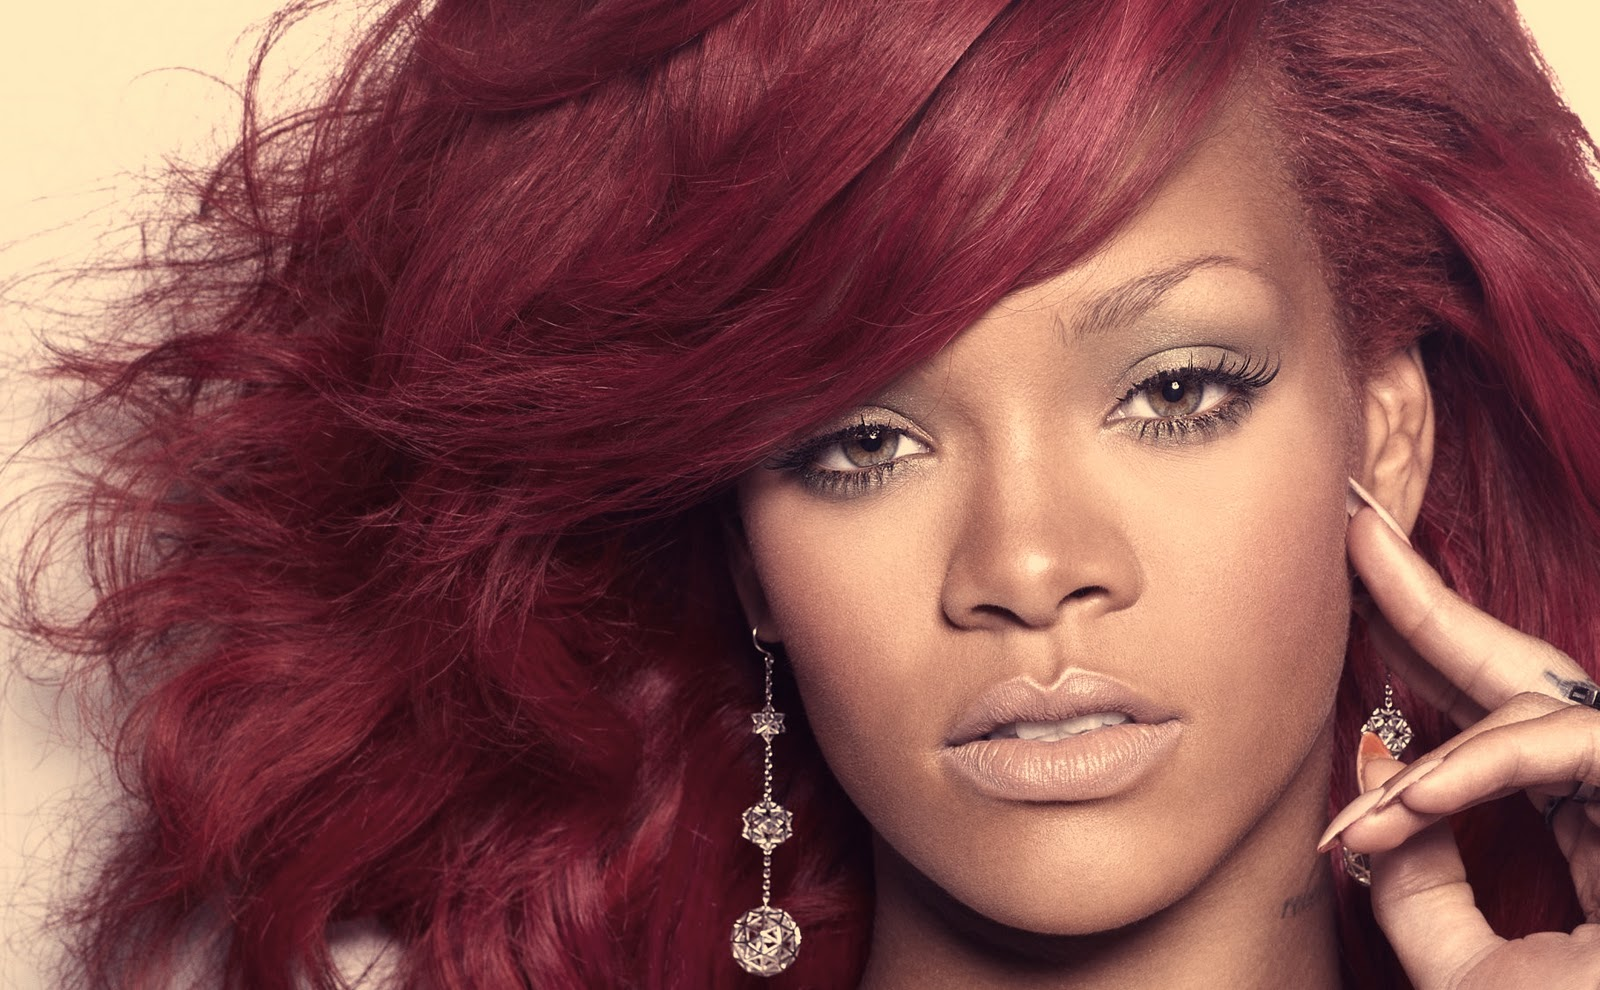 Rihanna Wallpapers 2011|Music Wallpapers